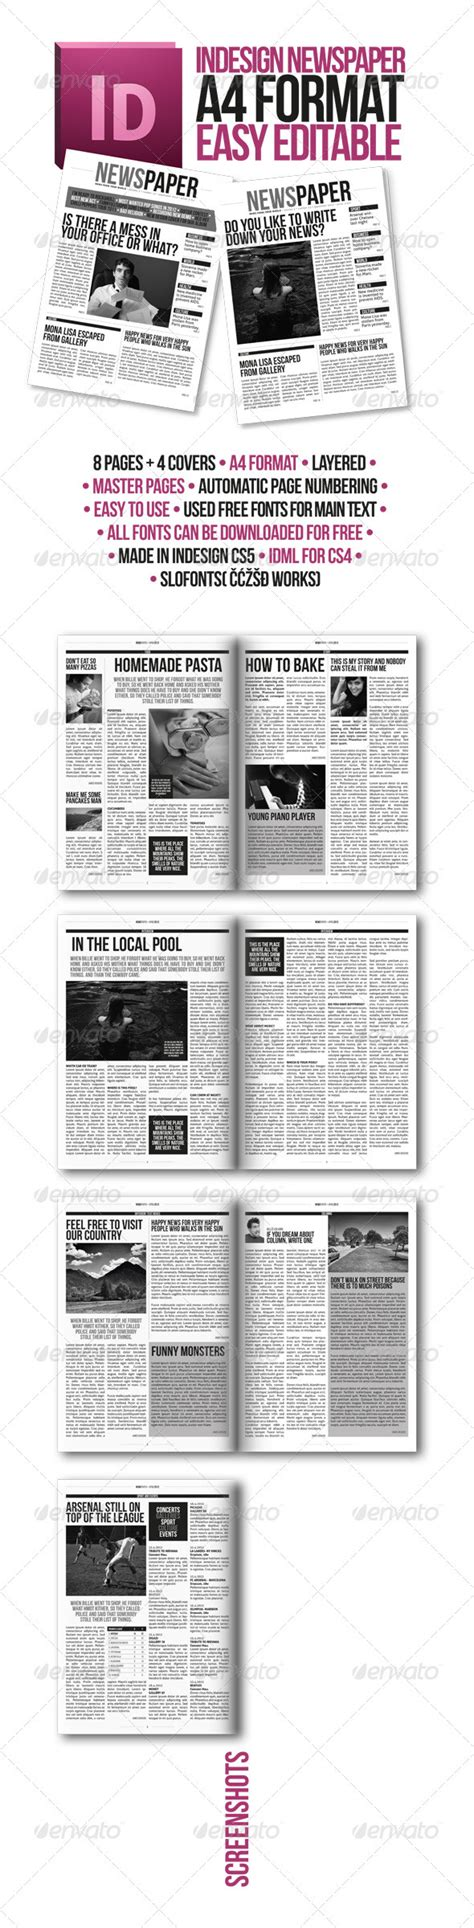 Indesign Modern Newspaper Magazine Template A4 By Zigazi83 Graphicriver Indesign Newspaper Template Free